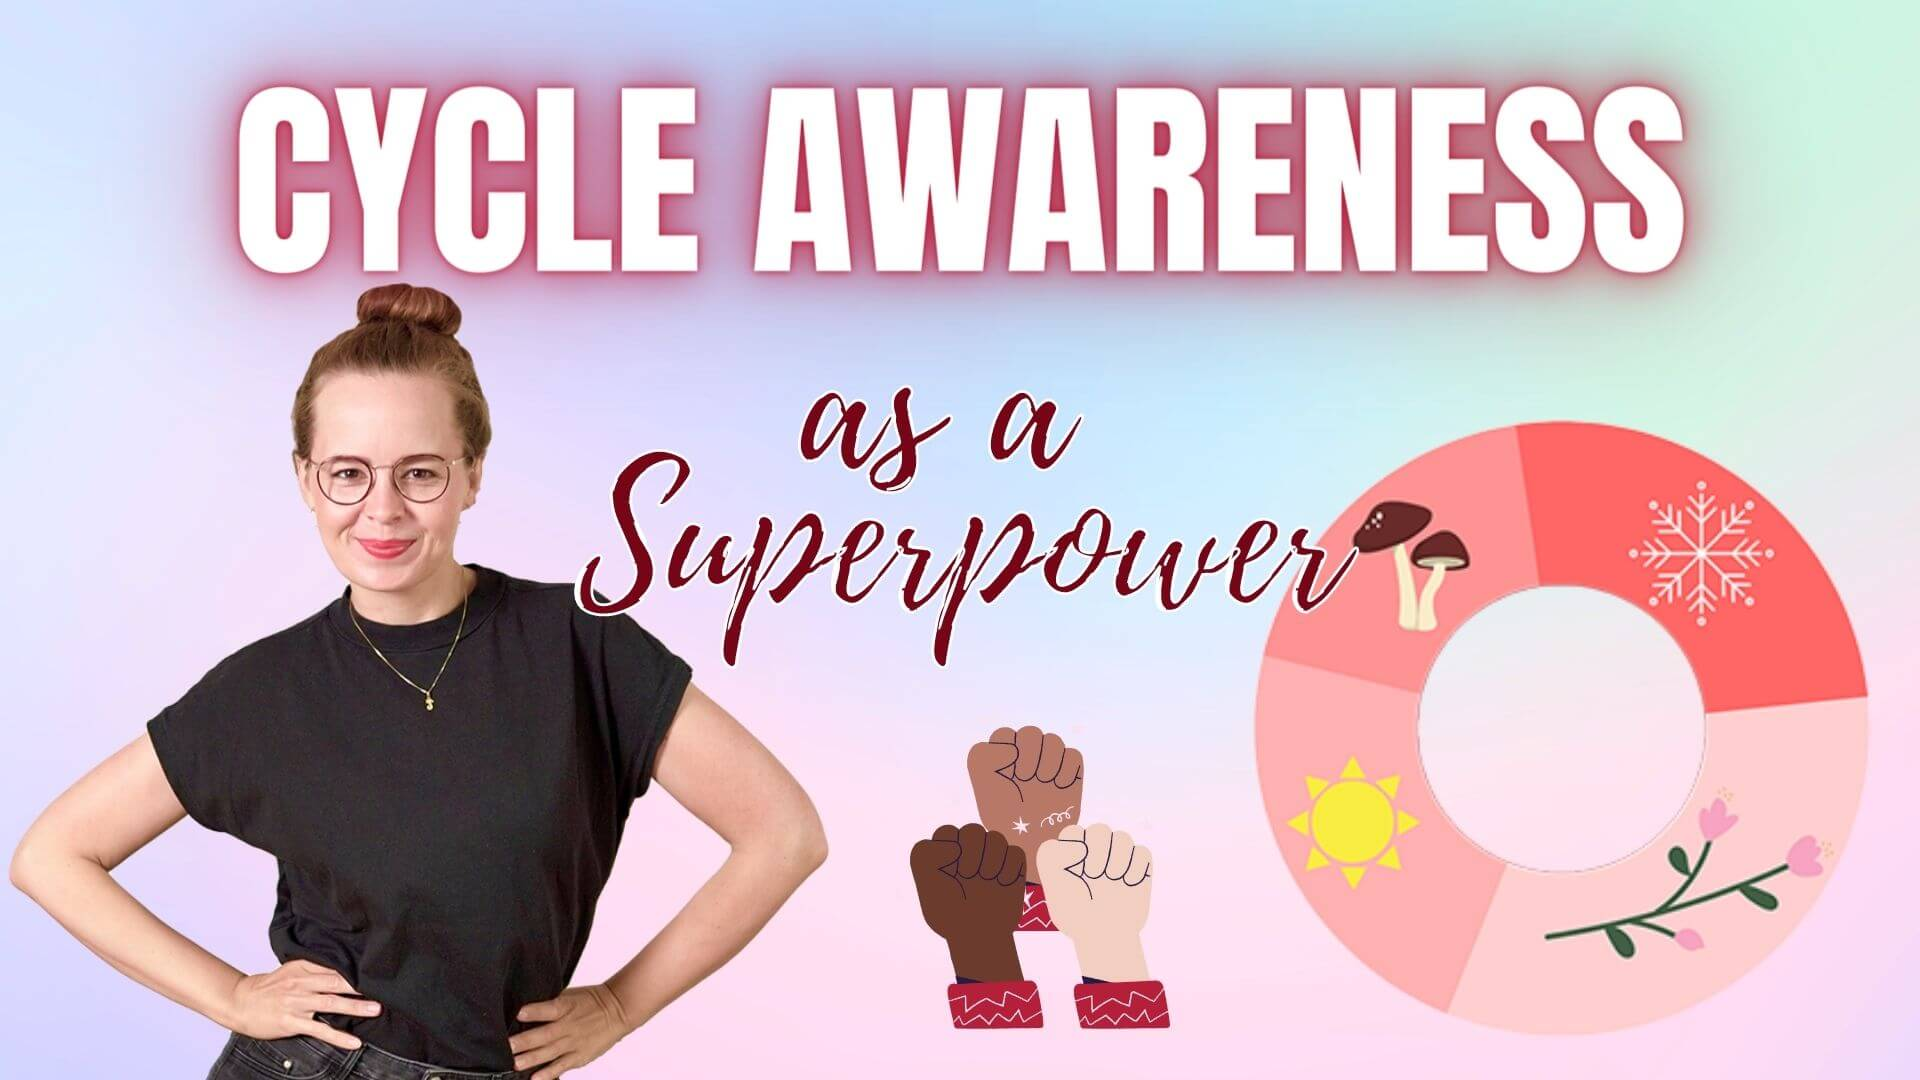 cycle awareness as your superpower, online course, mood swings, inner seasons, menstrual cycle, body literacy, learn online, Vulvani